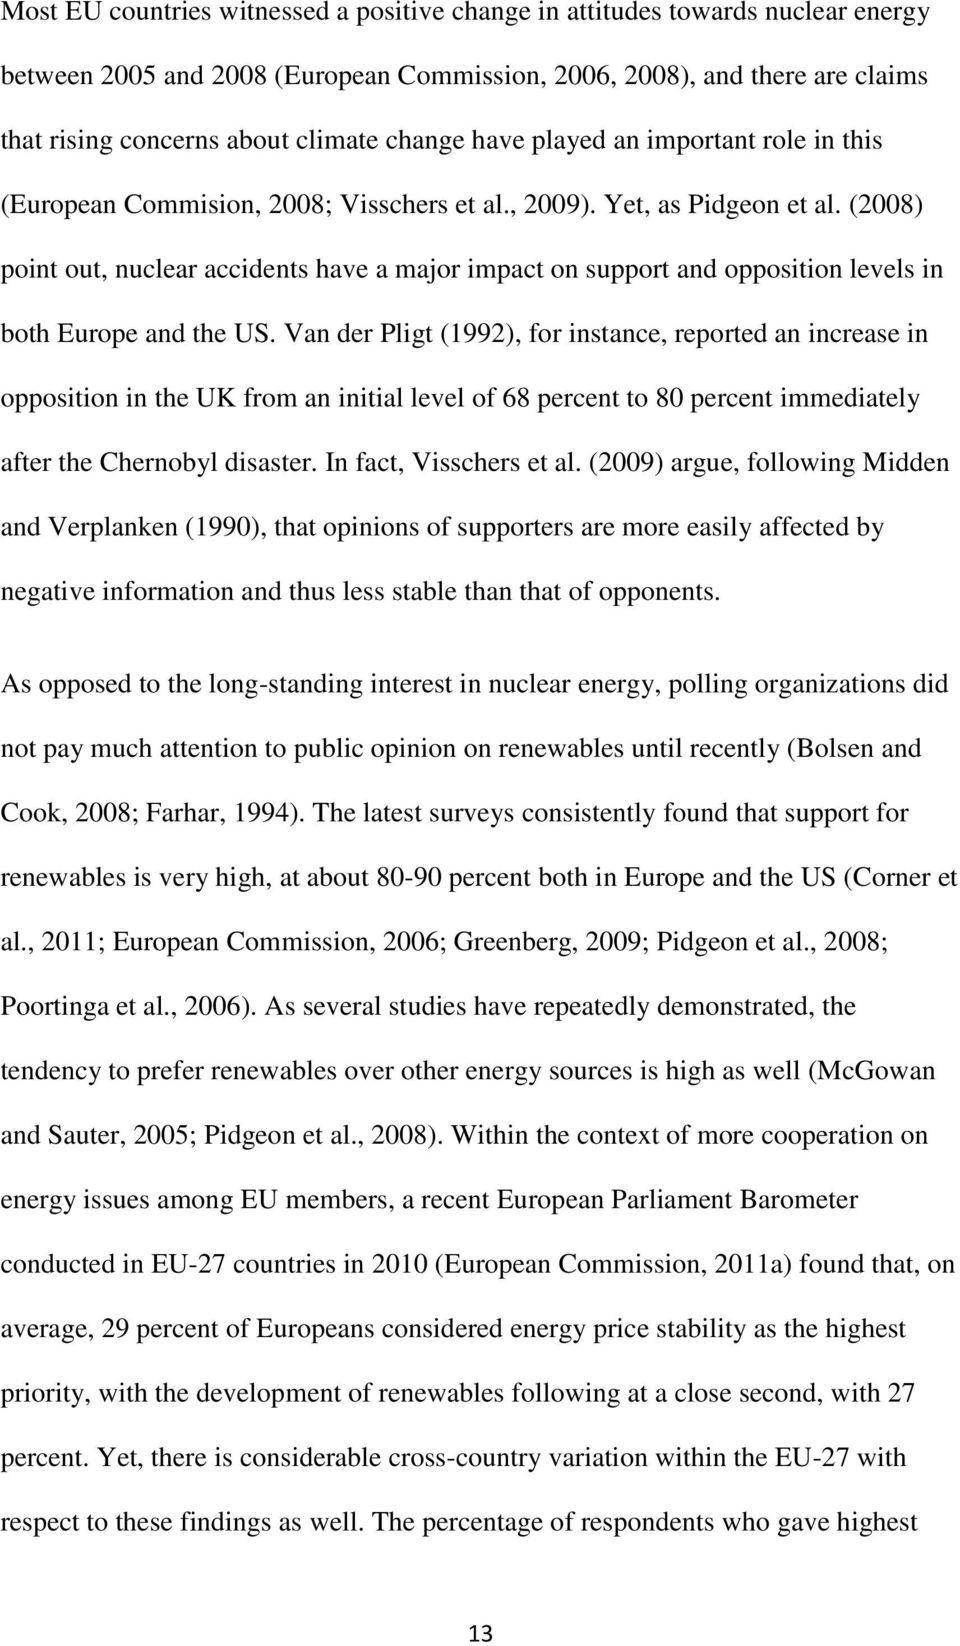 (2008) point out, nuclear accidents have a major impact on support and opposition levels in both Europe and the US.